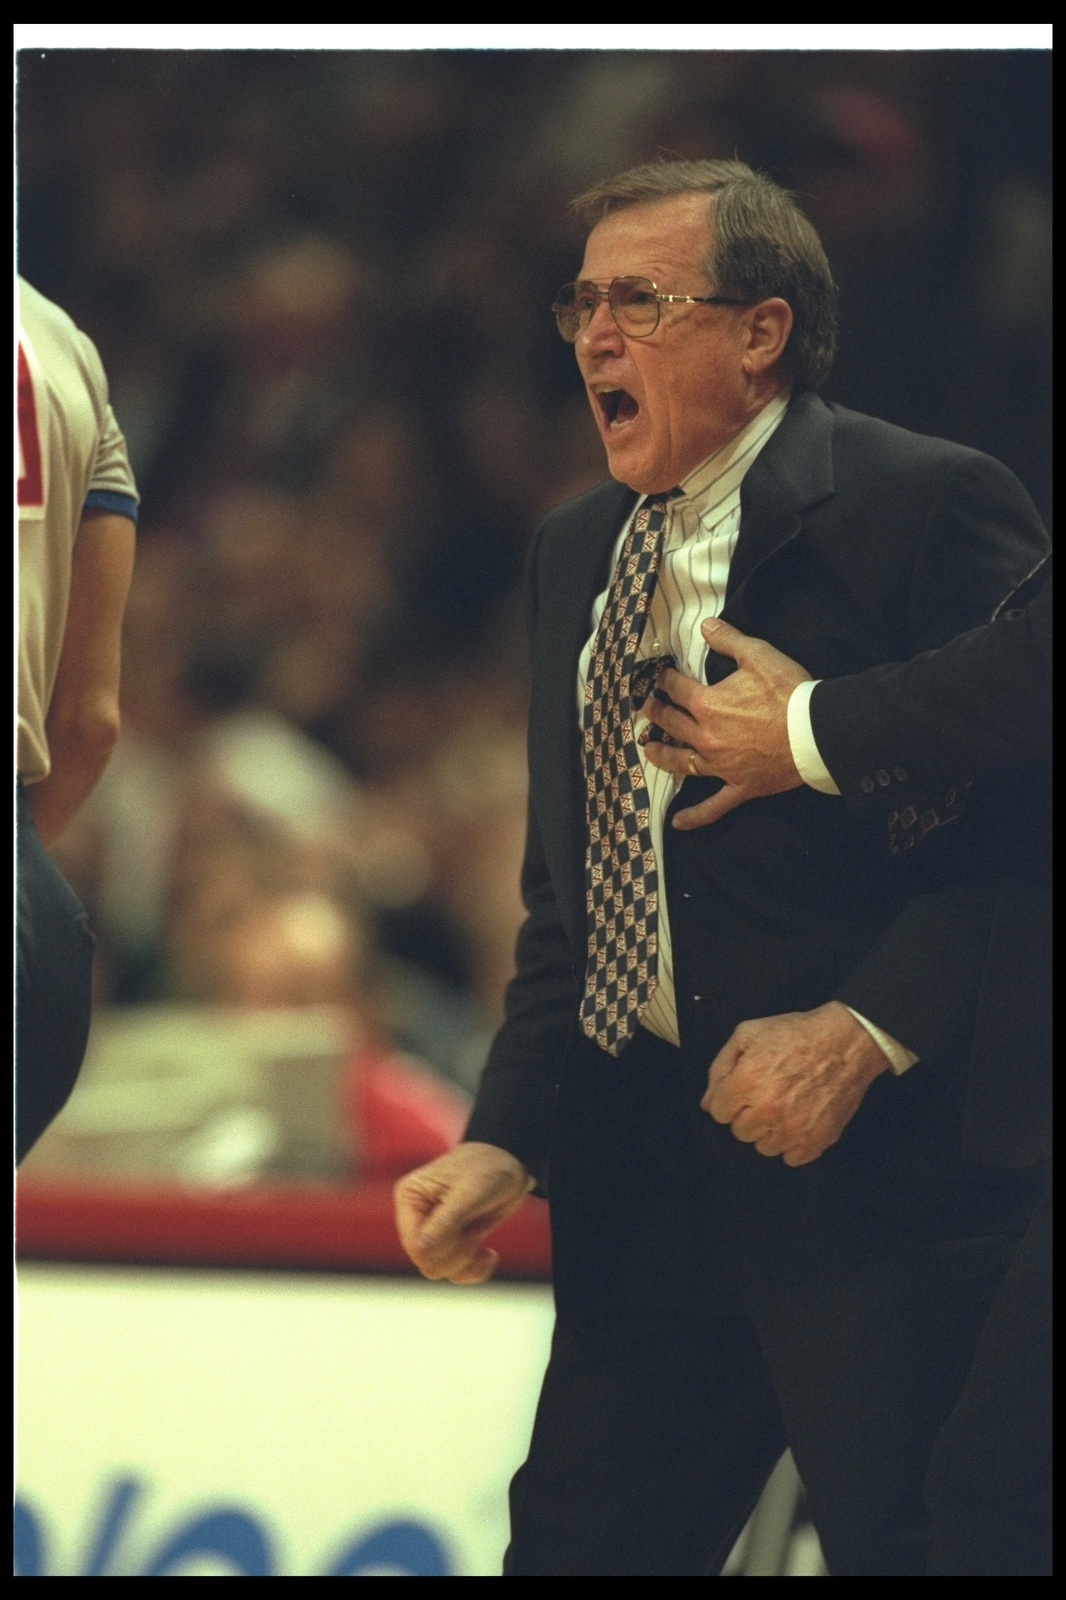 19 Dec 1995: Dallas Mavericks head coach Dick Motta yells during a game against the Chicago Bulls at the United Center in Chicago, Illinois. The Bulls won the game, 114-101.